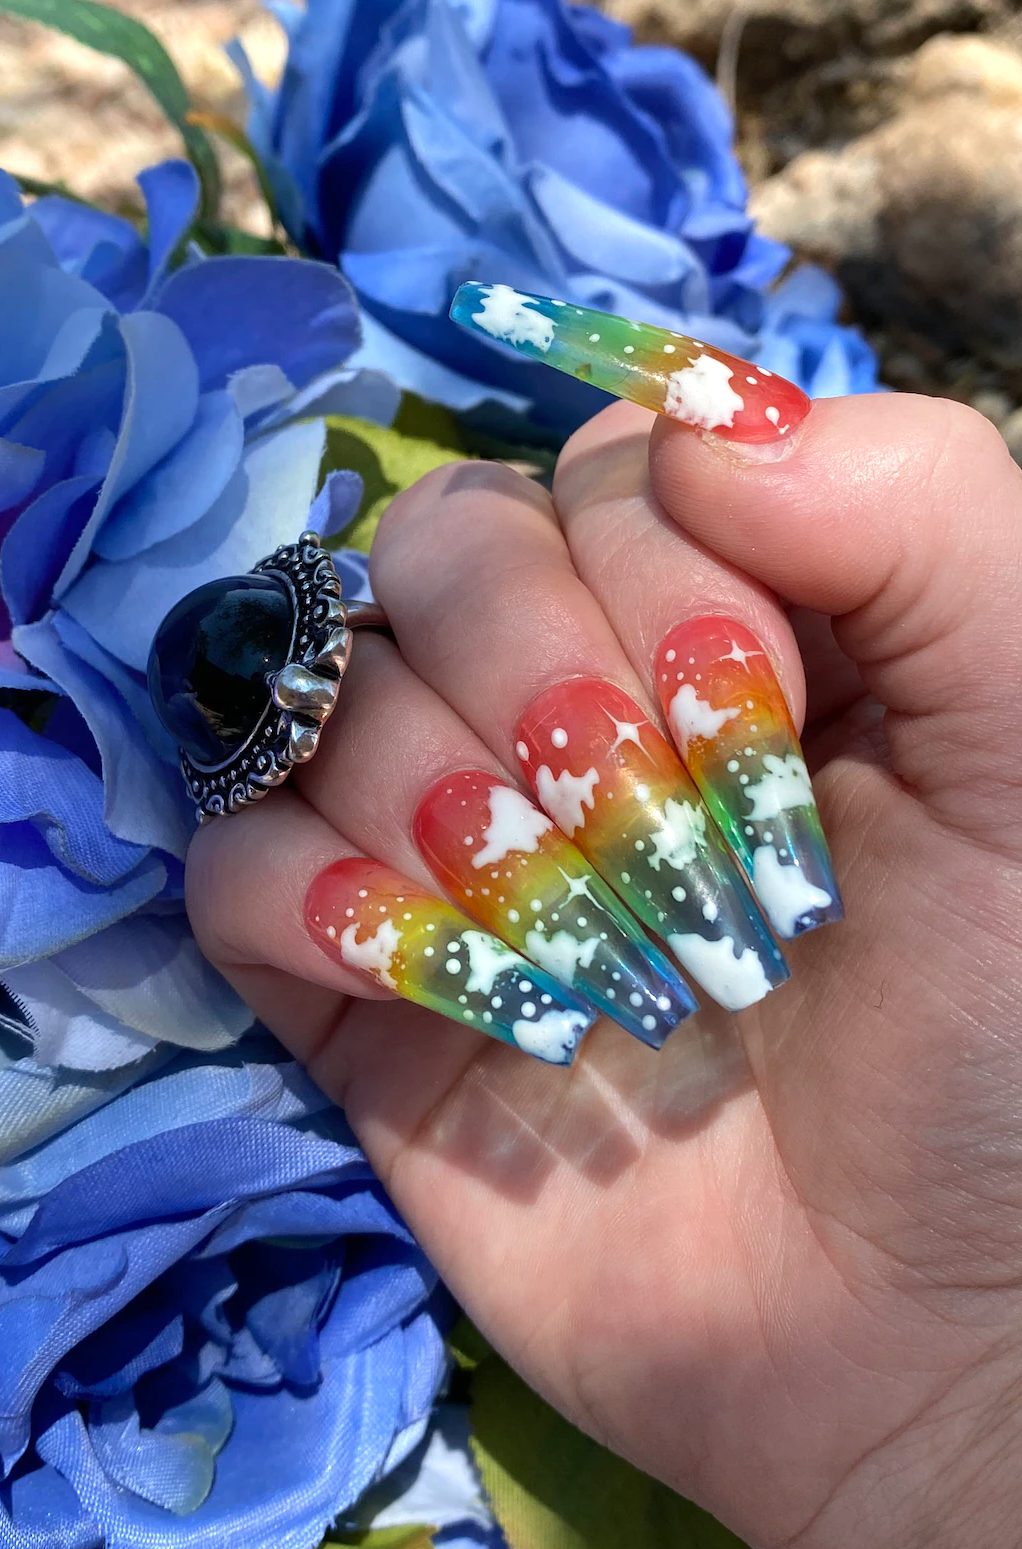 Sweet rainbow nails with cloud nail art for pride